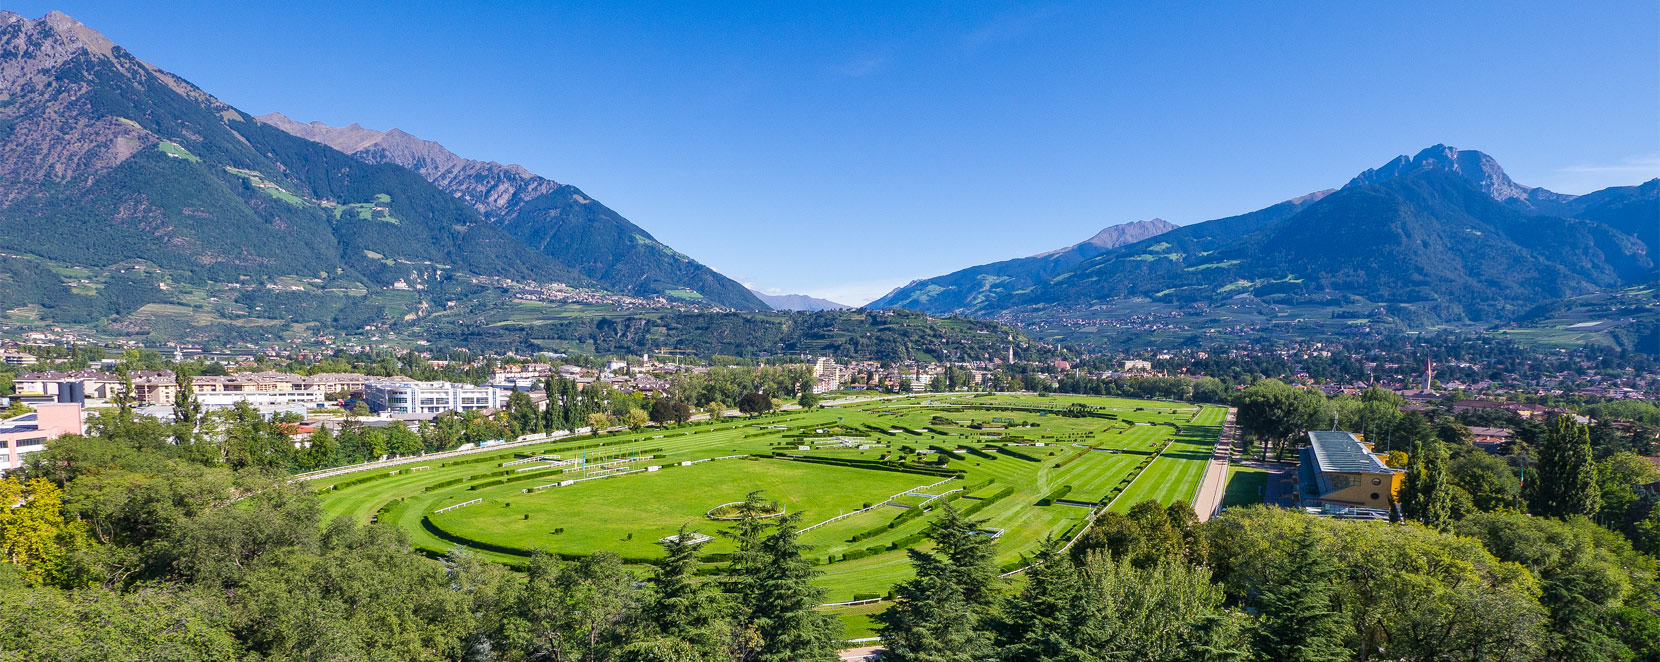 Hippodrome of Merano Active Holidays